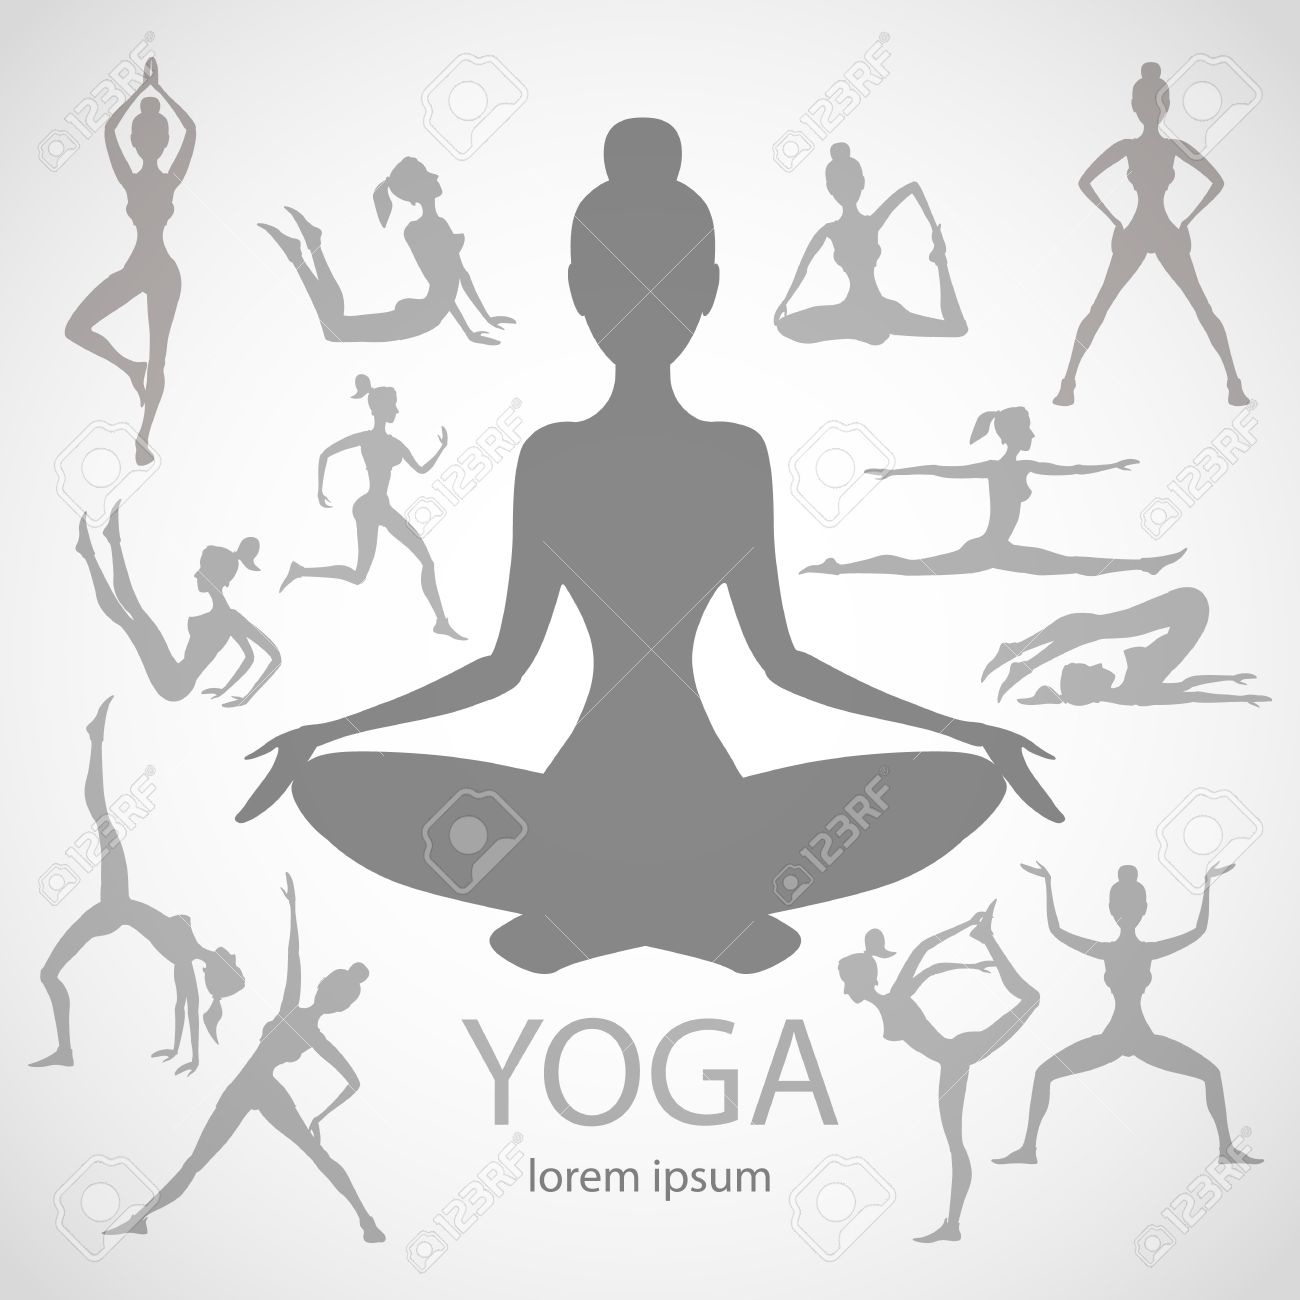 Yoga Poses Silhouettes Vector Body Pose Female Art Black Royalty Free Cliparts Vectors And Stock Illustration Image 40102825